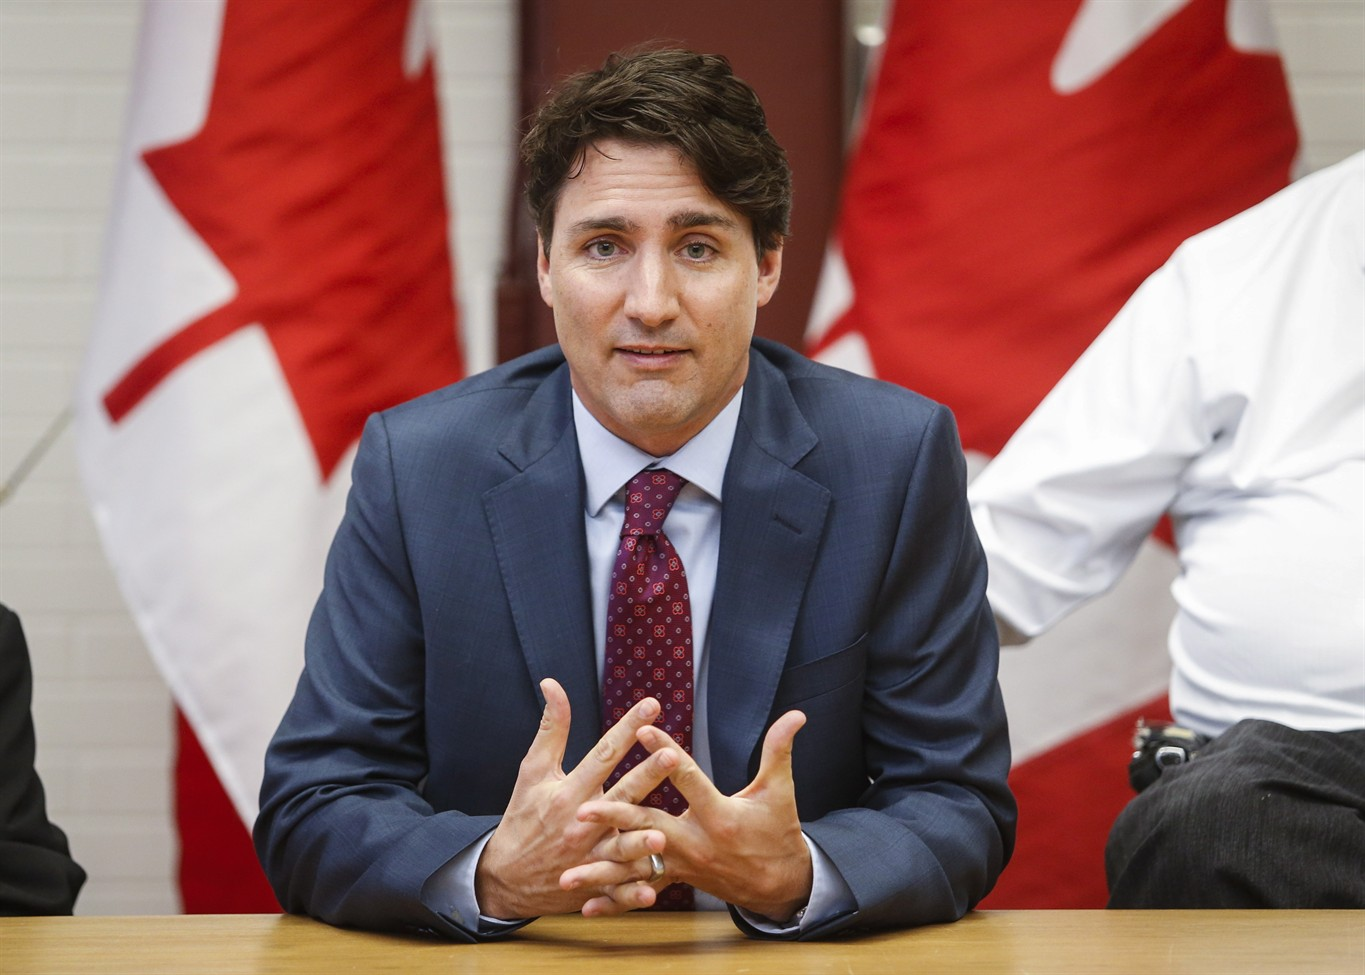 Strong reaction to Trudeau's carbon price